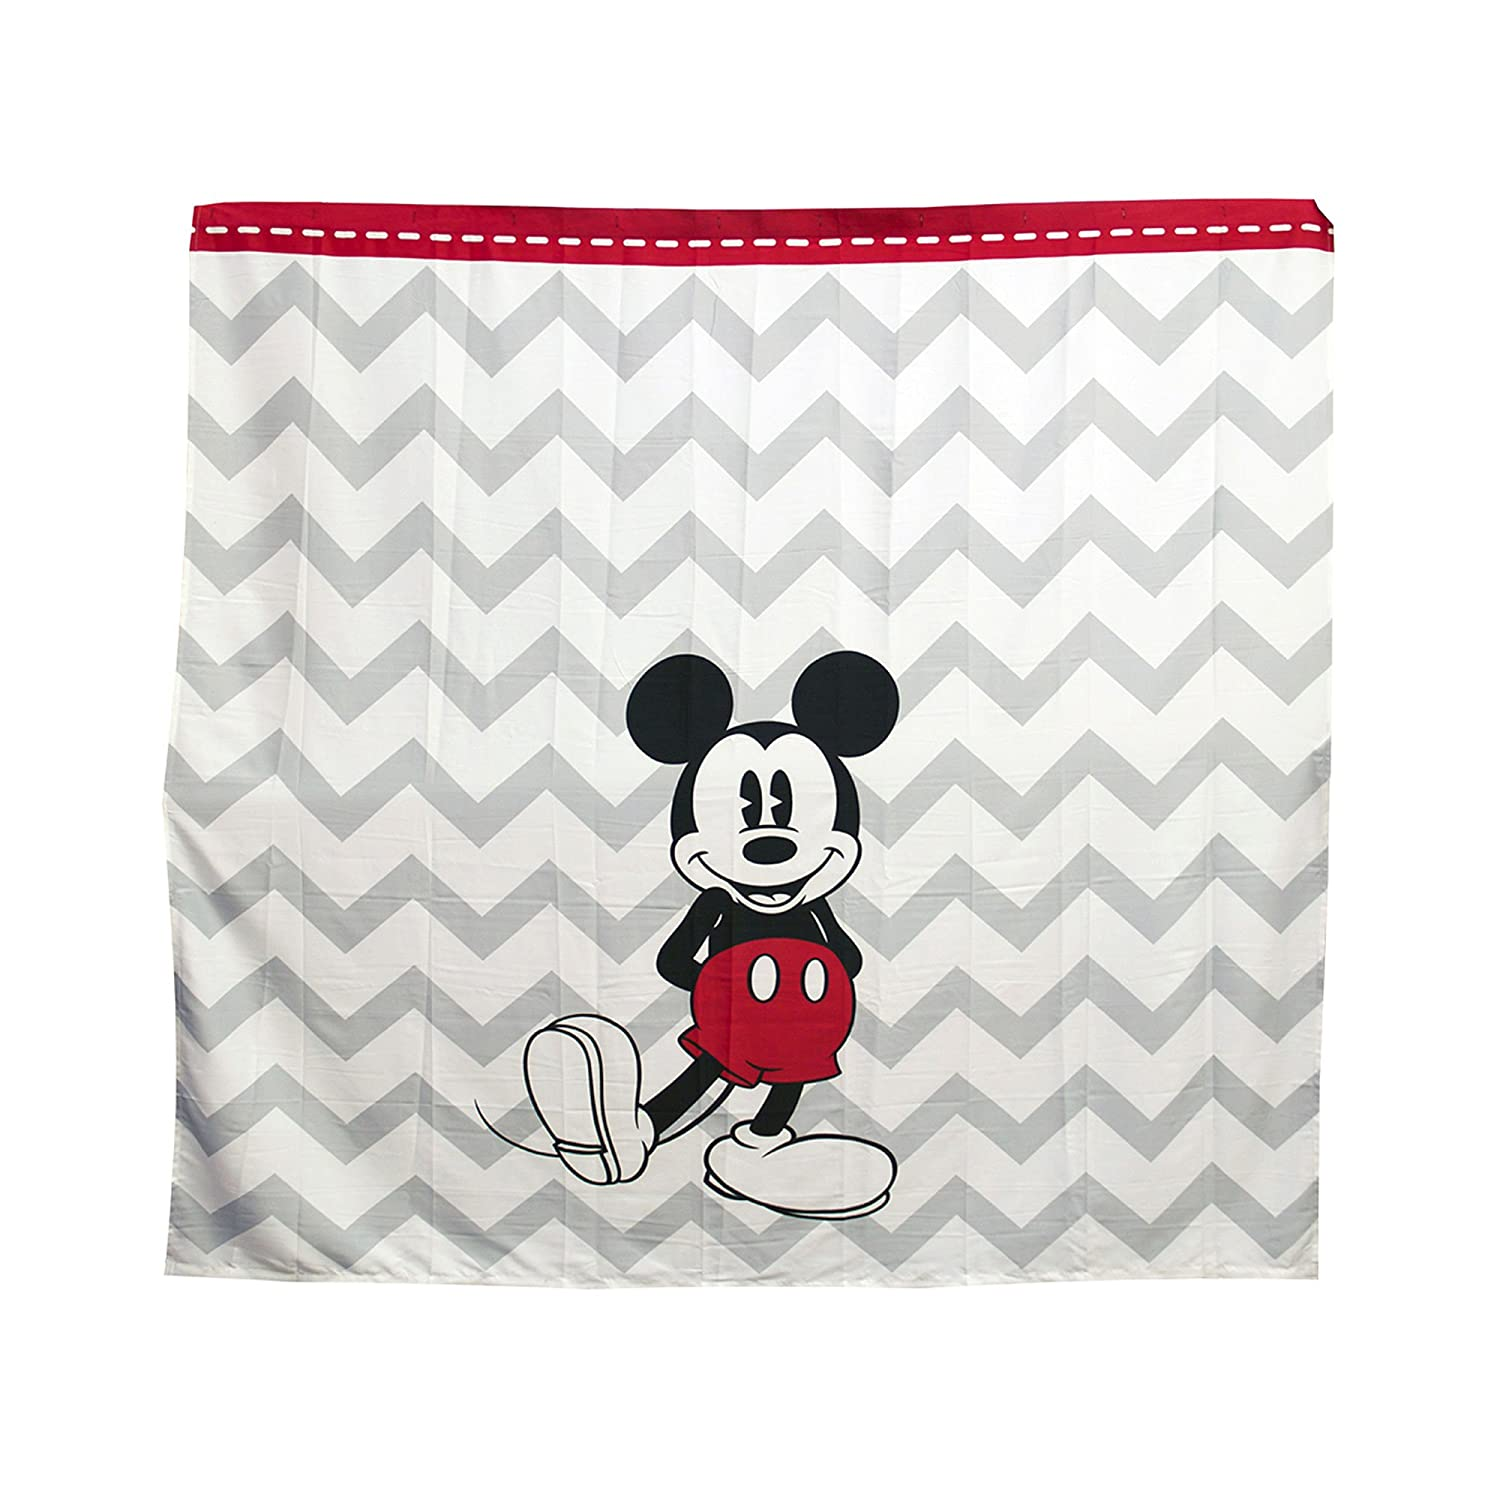 Very Cute Black Bathroom Set In Mickey Mouse Motif Include Towel